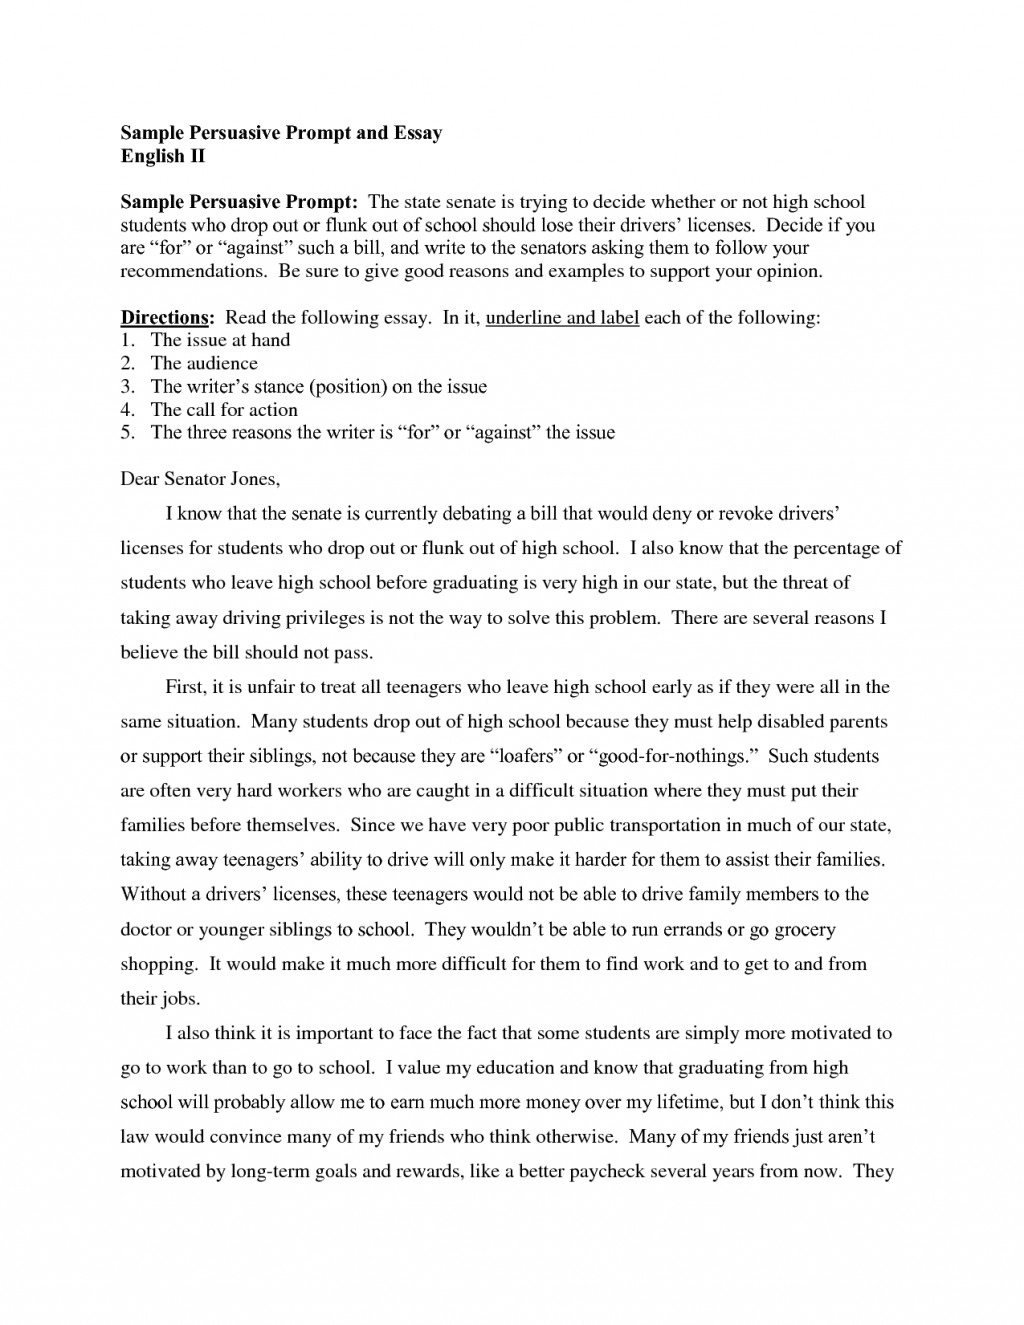 015 Persuasive Essay Topics For High School Sample Ideas Highschool Students Good Prompt Funny Easy Fun List Of Seniors Writing English Free Research Paper Topic Formidable College Large